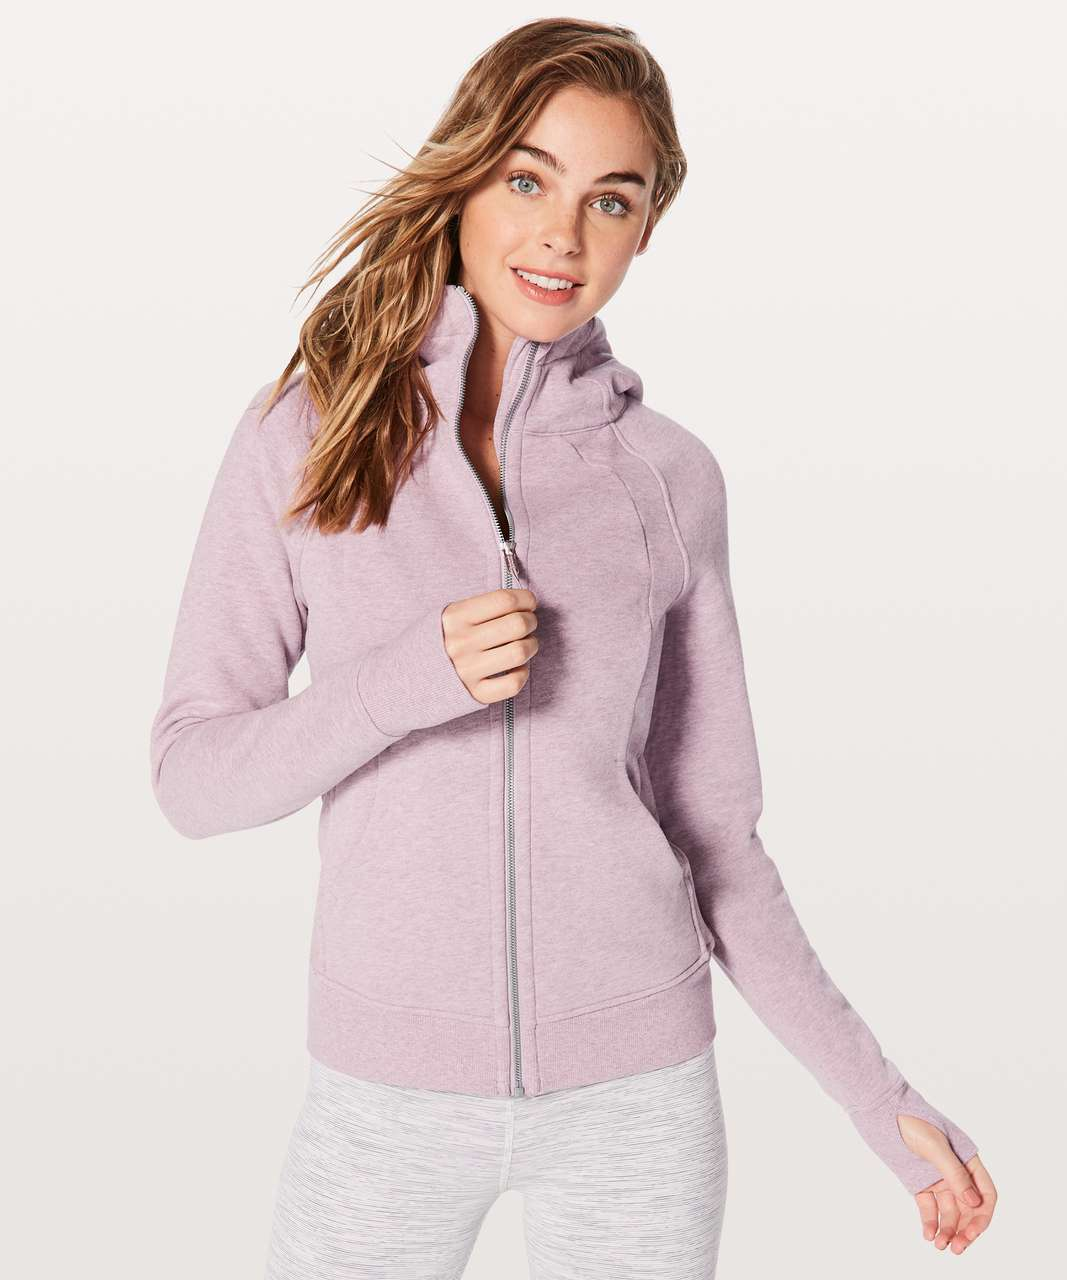 Lululemon Scuba Hoodie *Light Cotton Fleece - Heathered Dusty Rose (First Release)